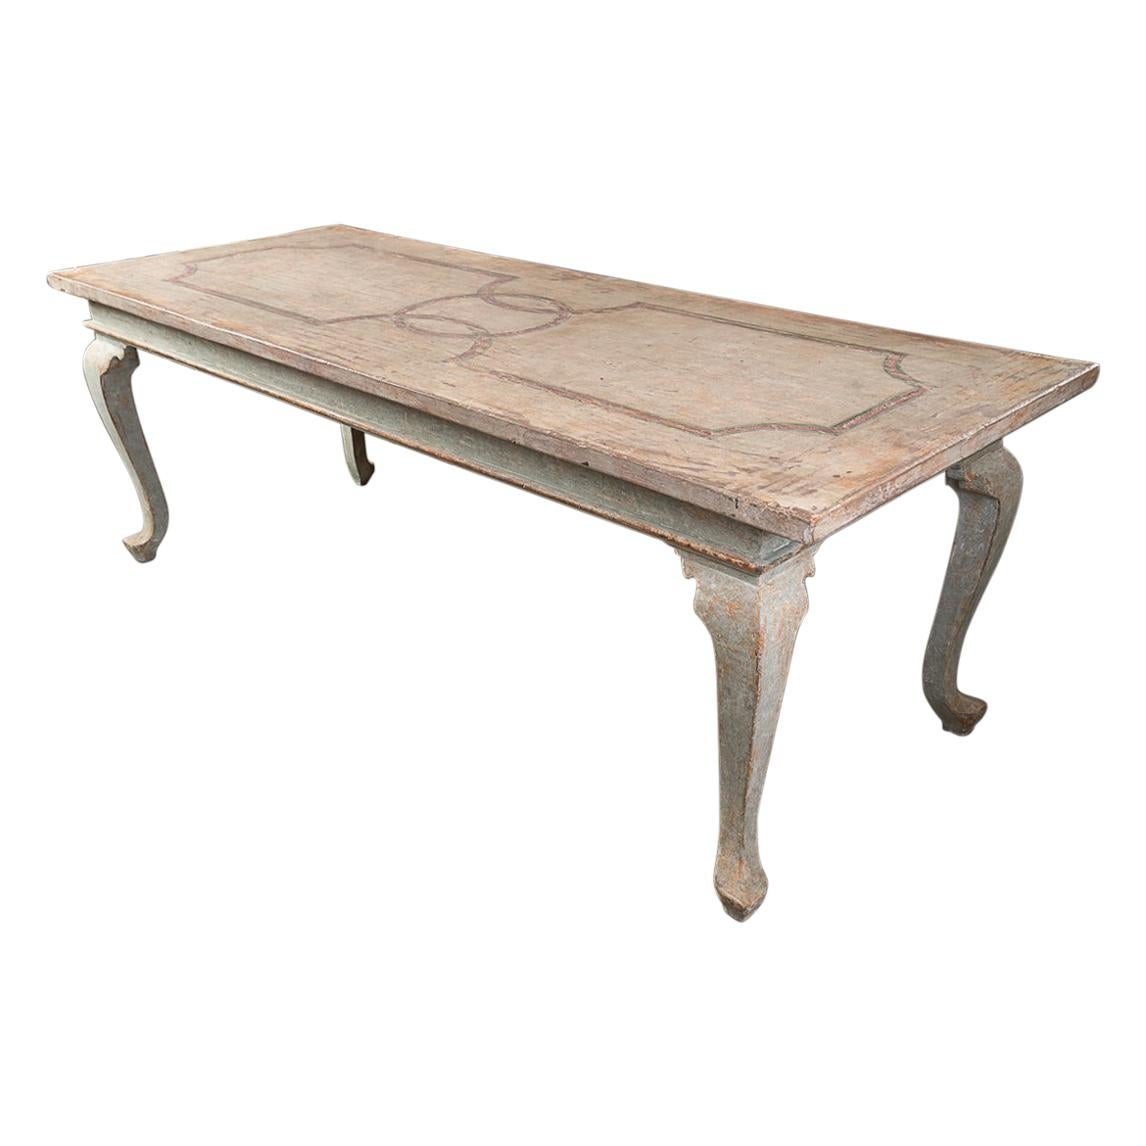 Highly Decorative Painted Italian Provincial Dining Table